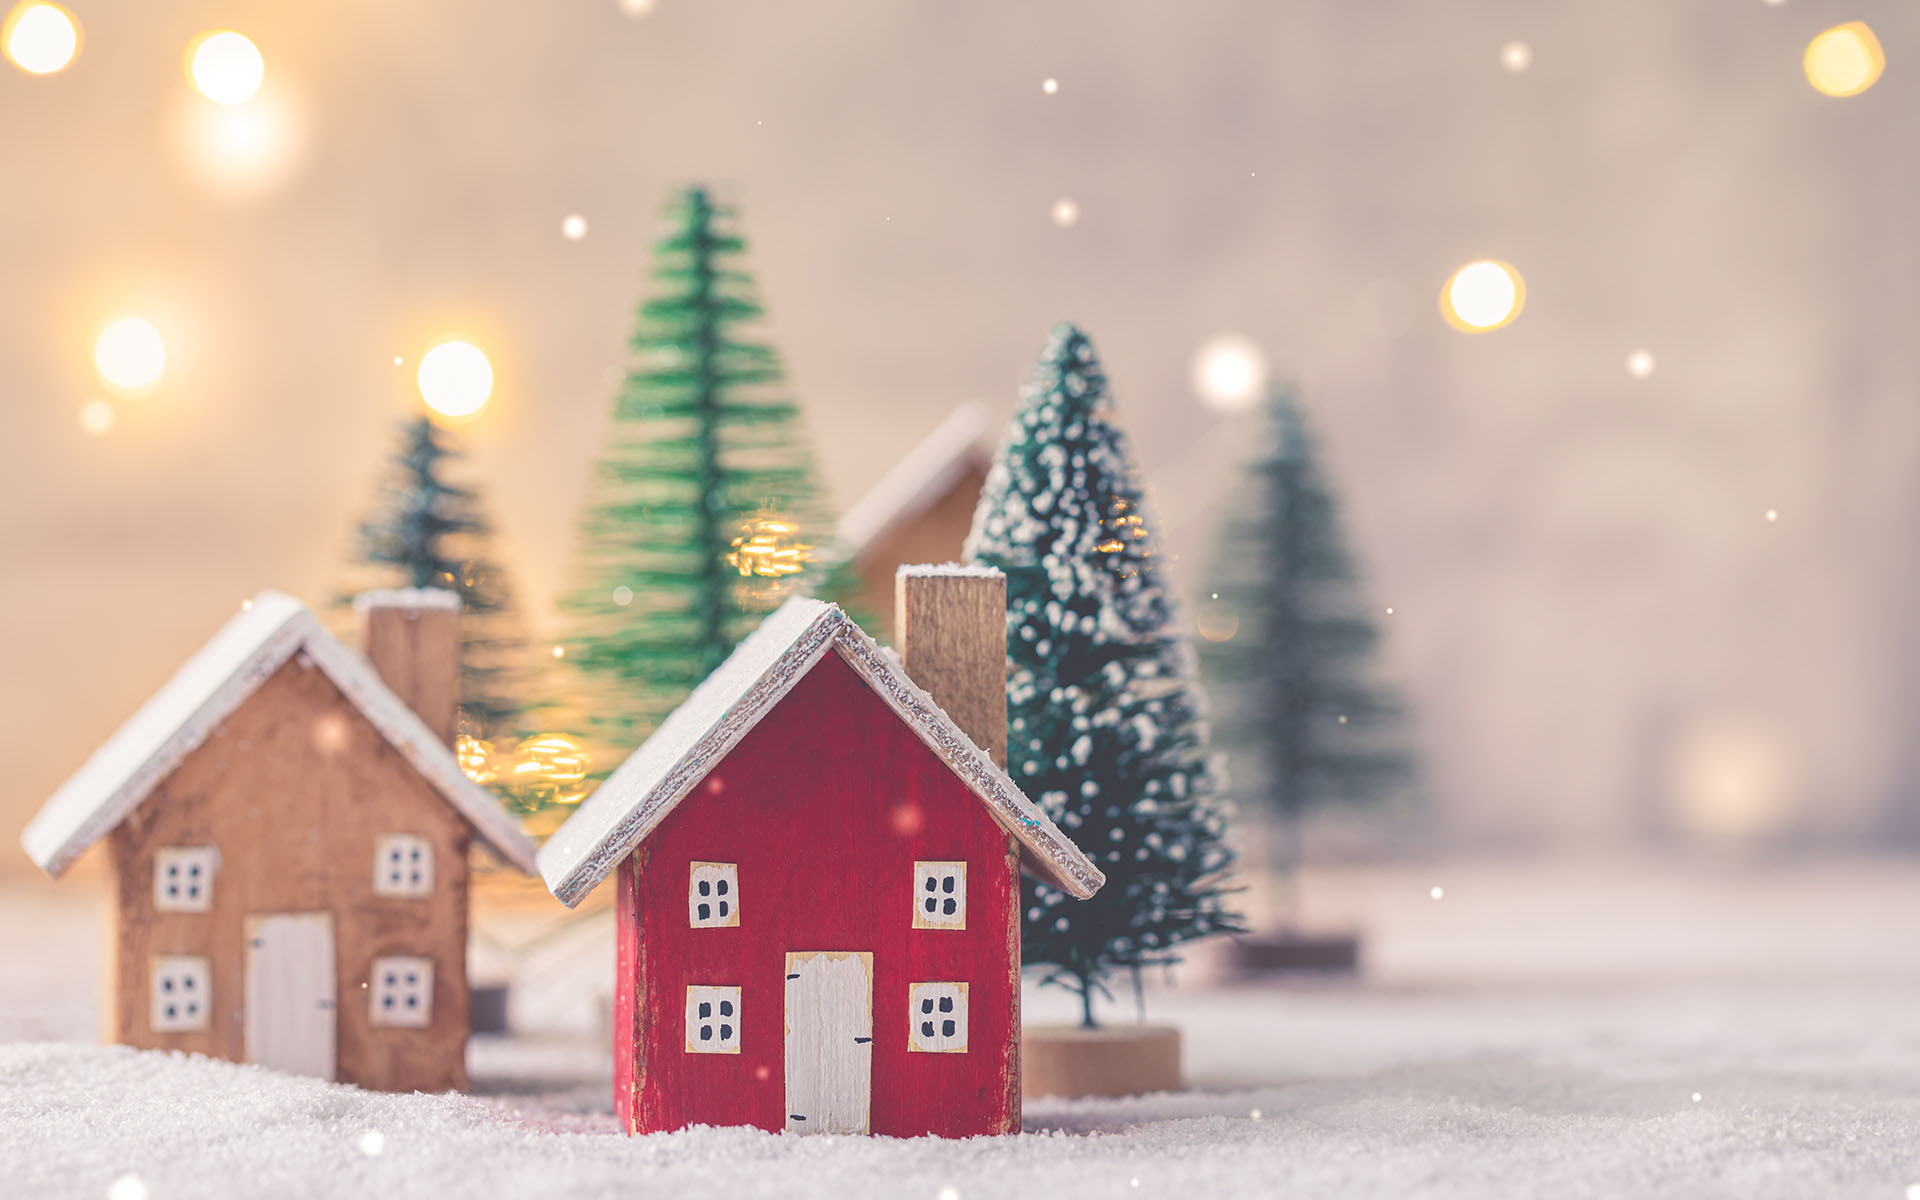 Home for the Holidays: A Self-Love Practice -Miniature wooden houses on the snow over blurred Christmas decoration background, toned, postcard concept